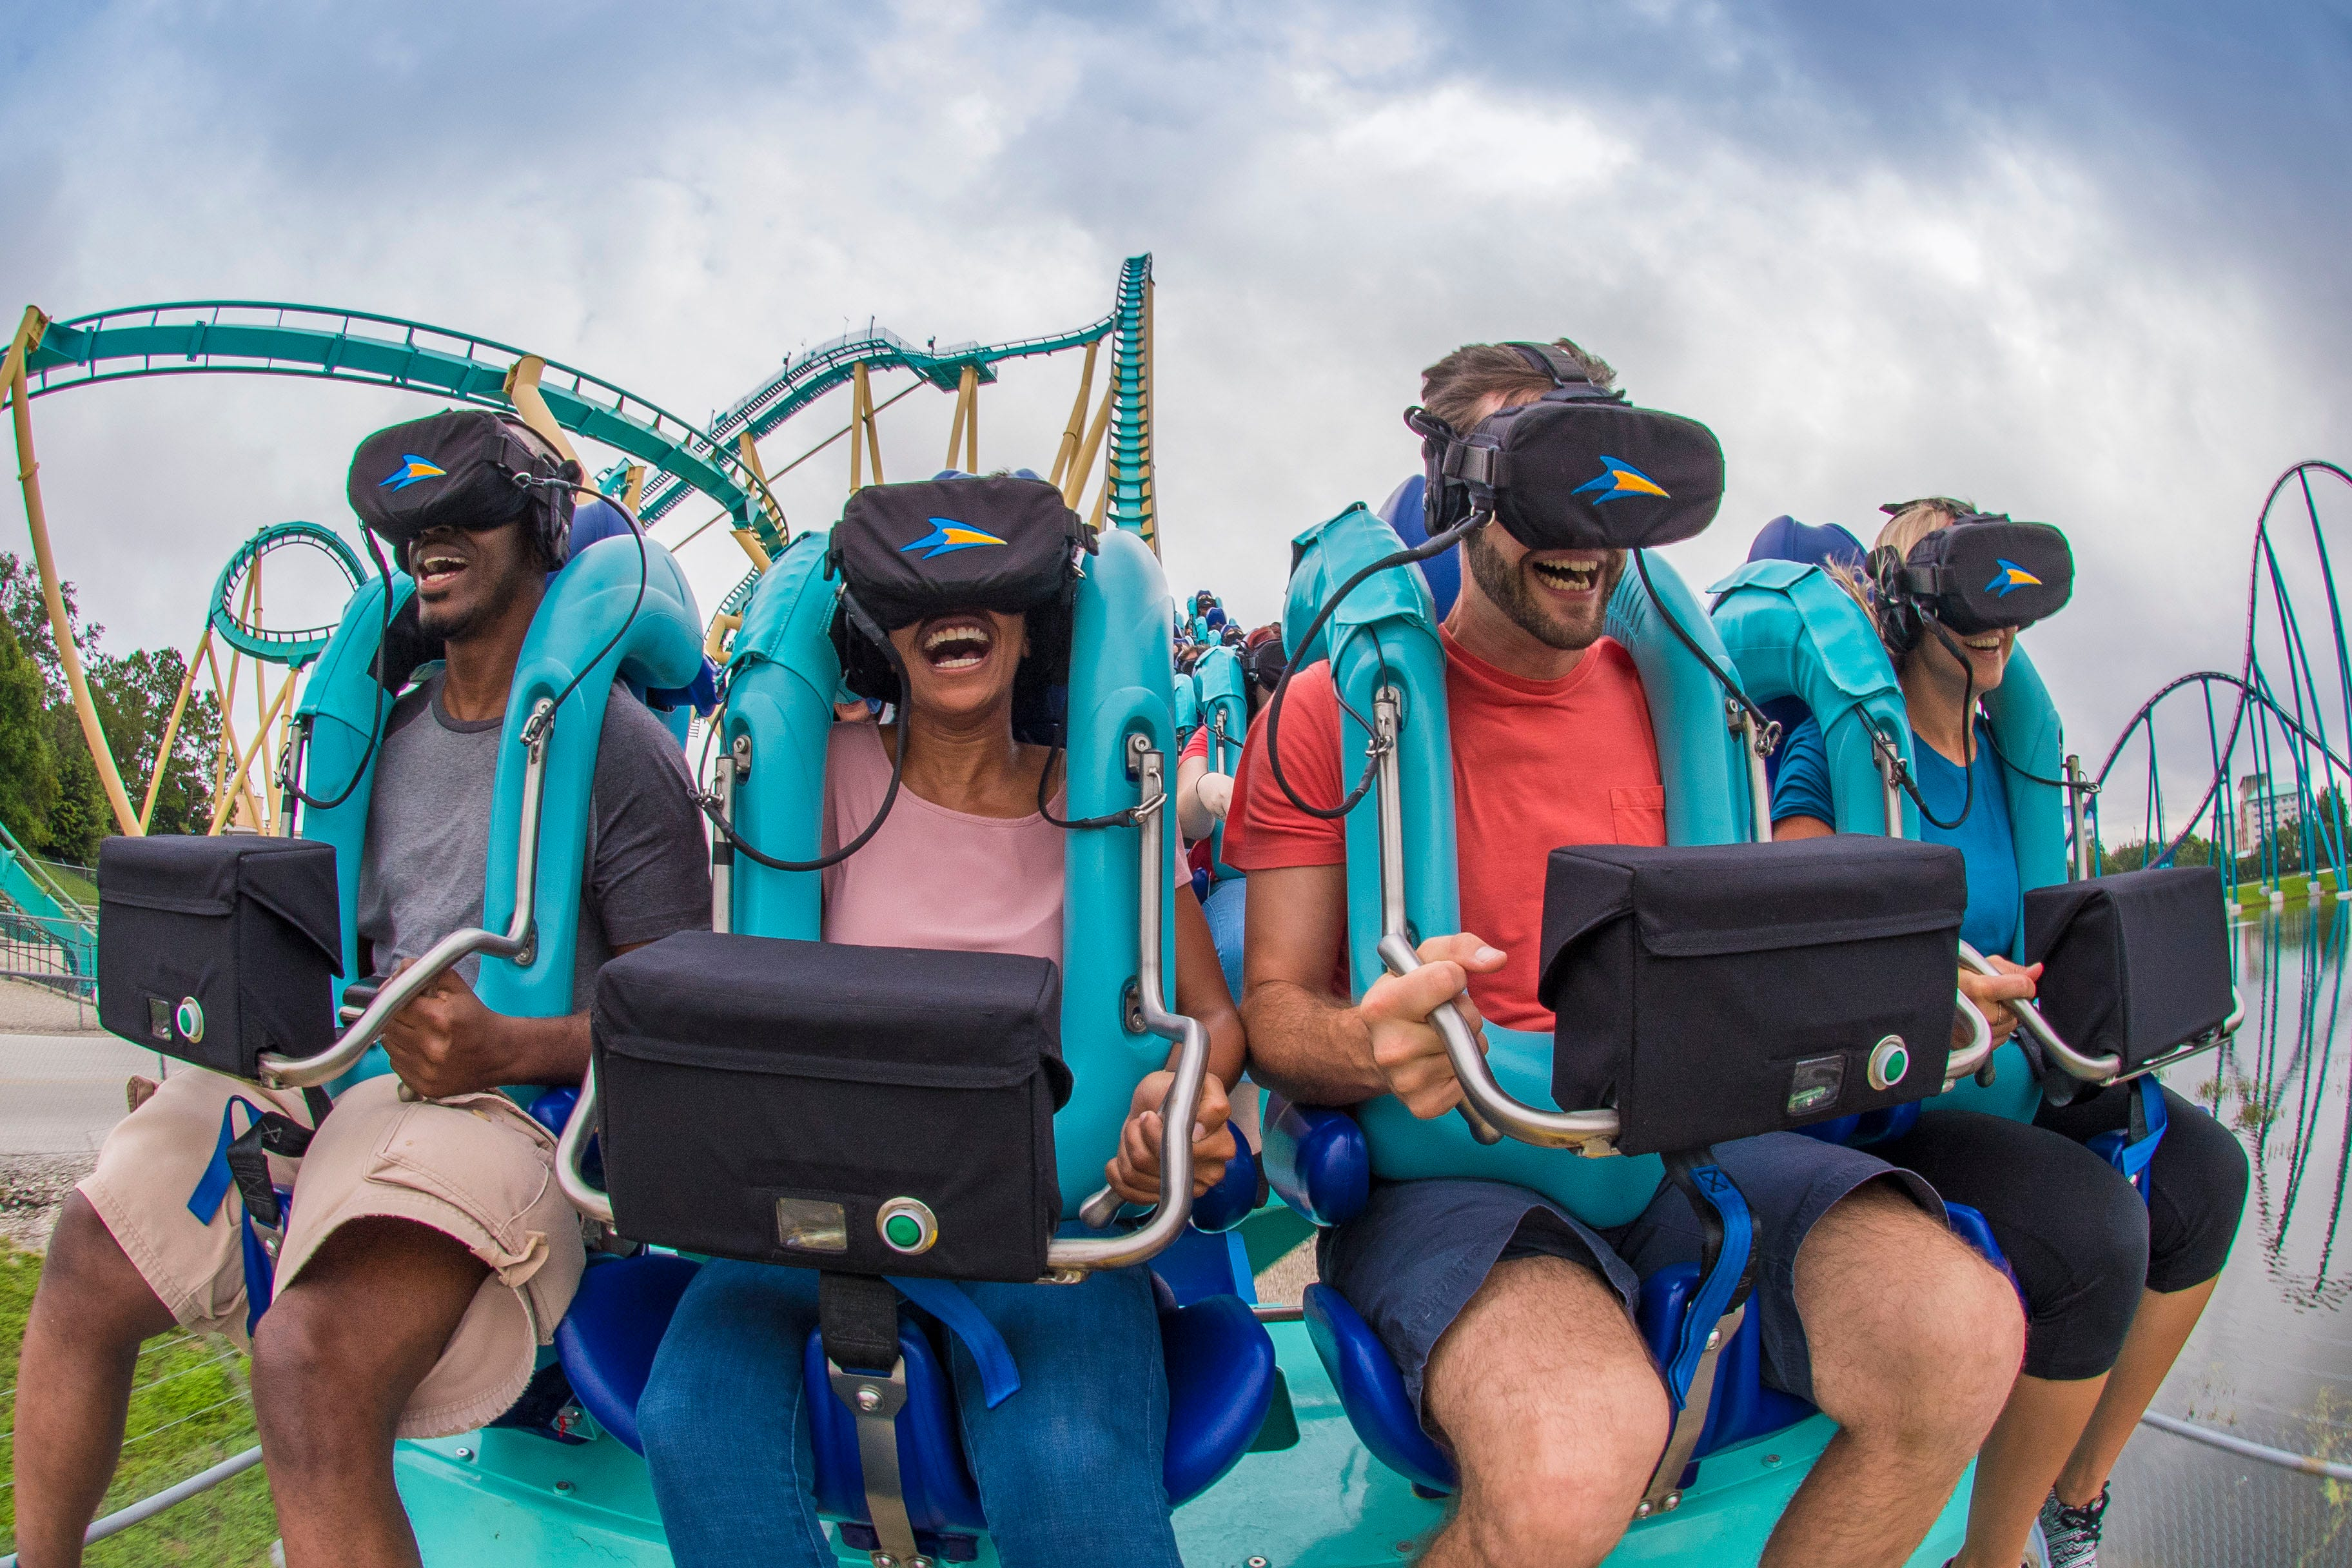 Virtual reality: VR tech added to theme park rides   USA Today